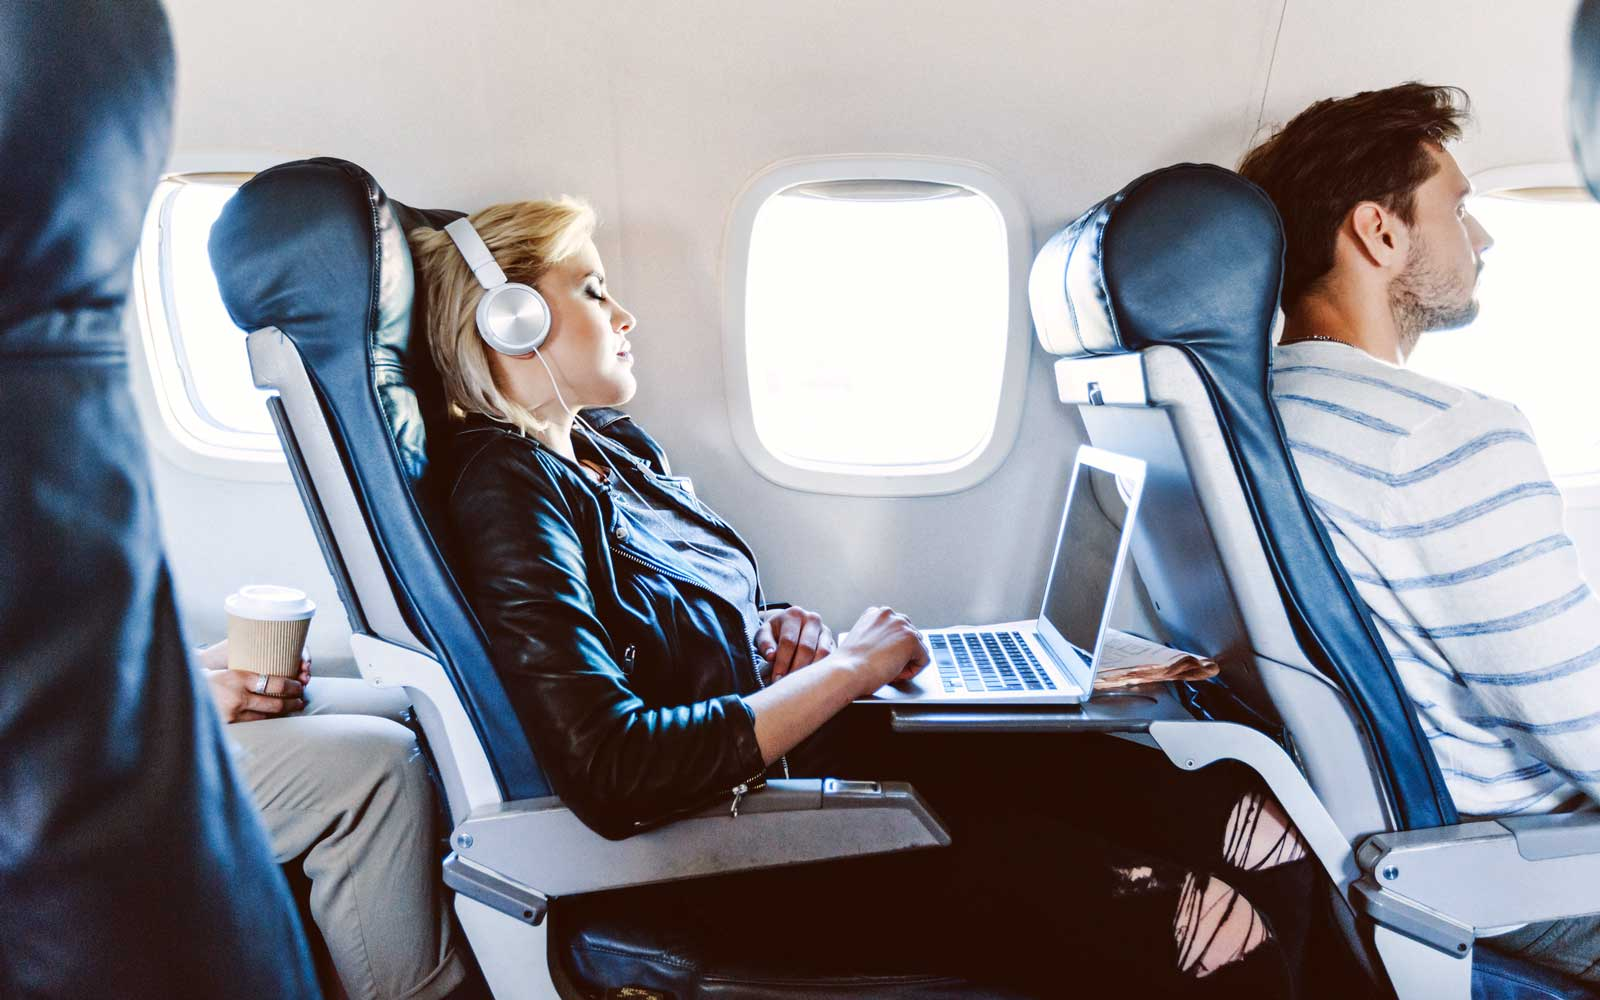 How to Know If You'll Be Able to Binge Netflix on Your Next Flight